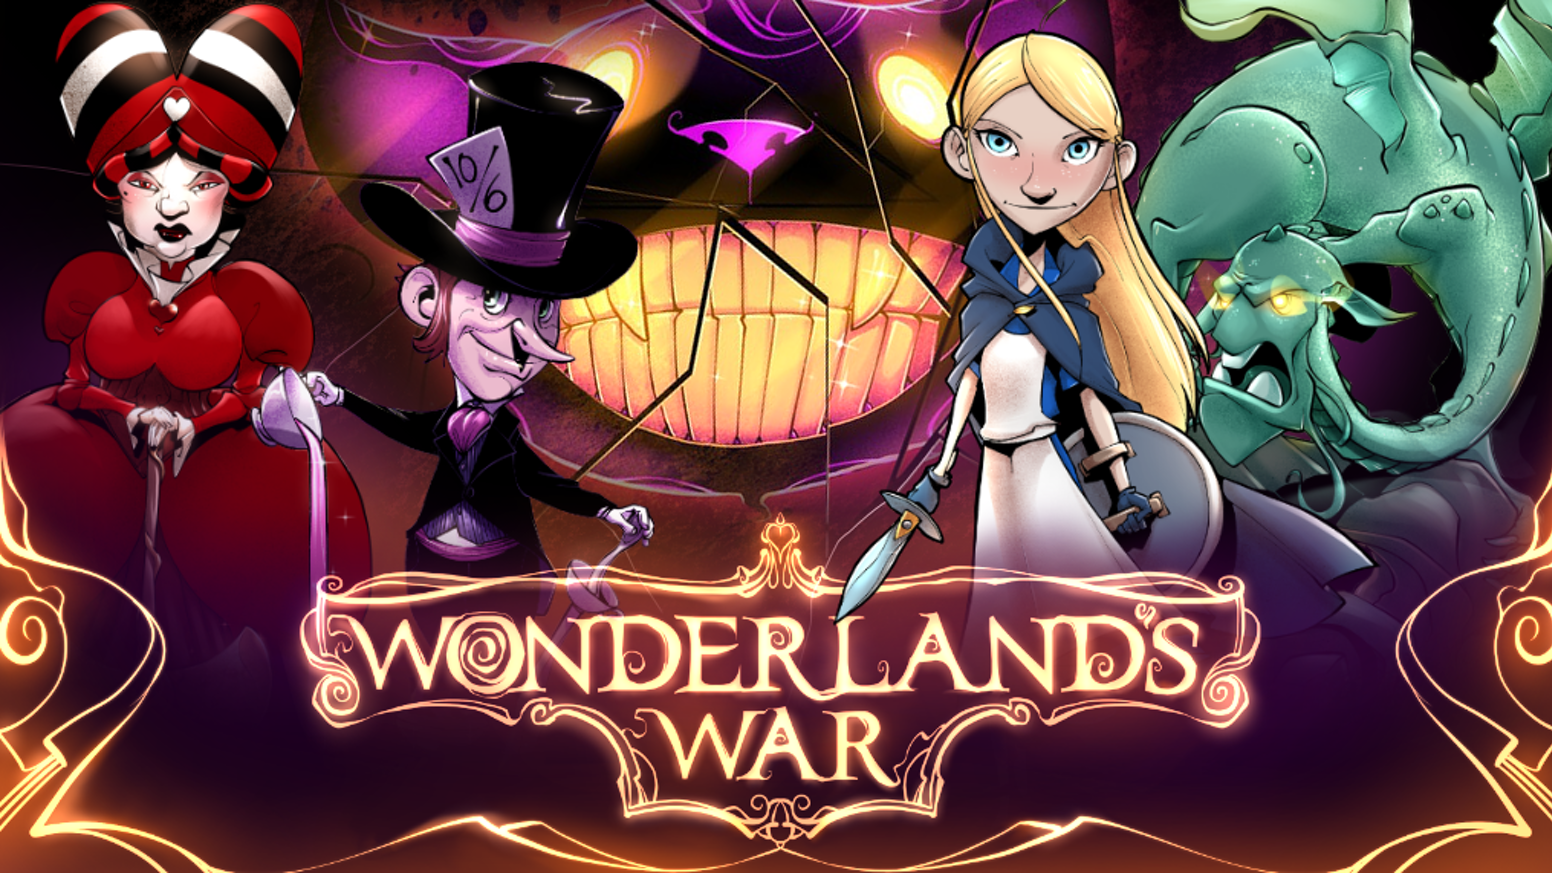 The Looking Glass has shattered, madness is being drained from the inhabitants, and war has come. Who will rule Wonderland?